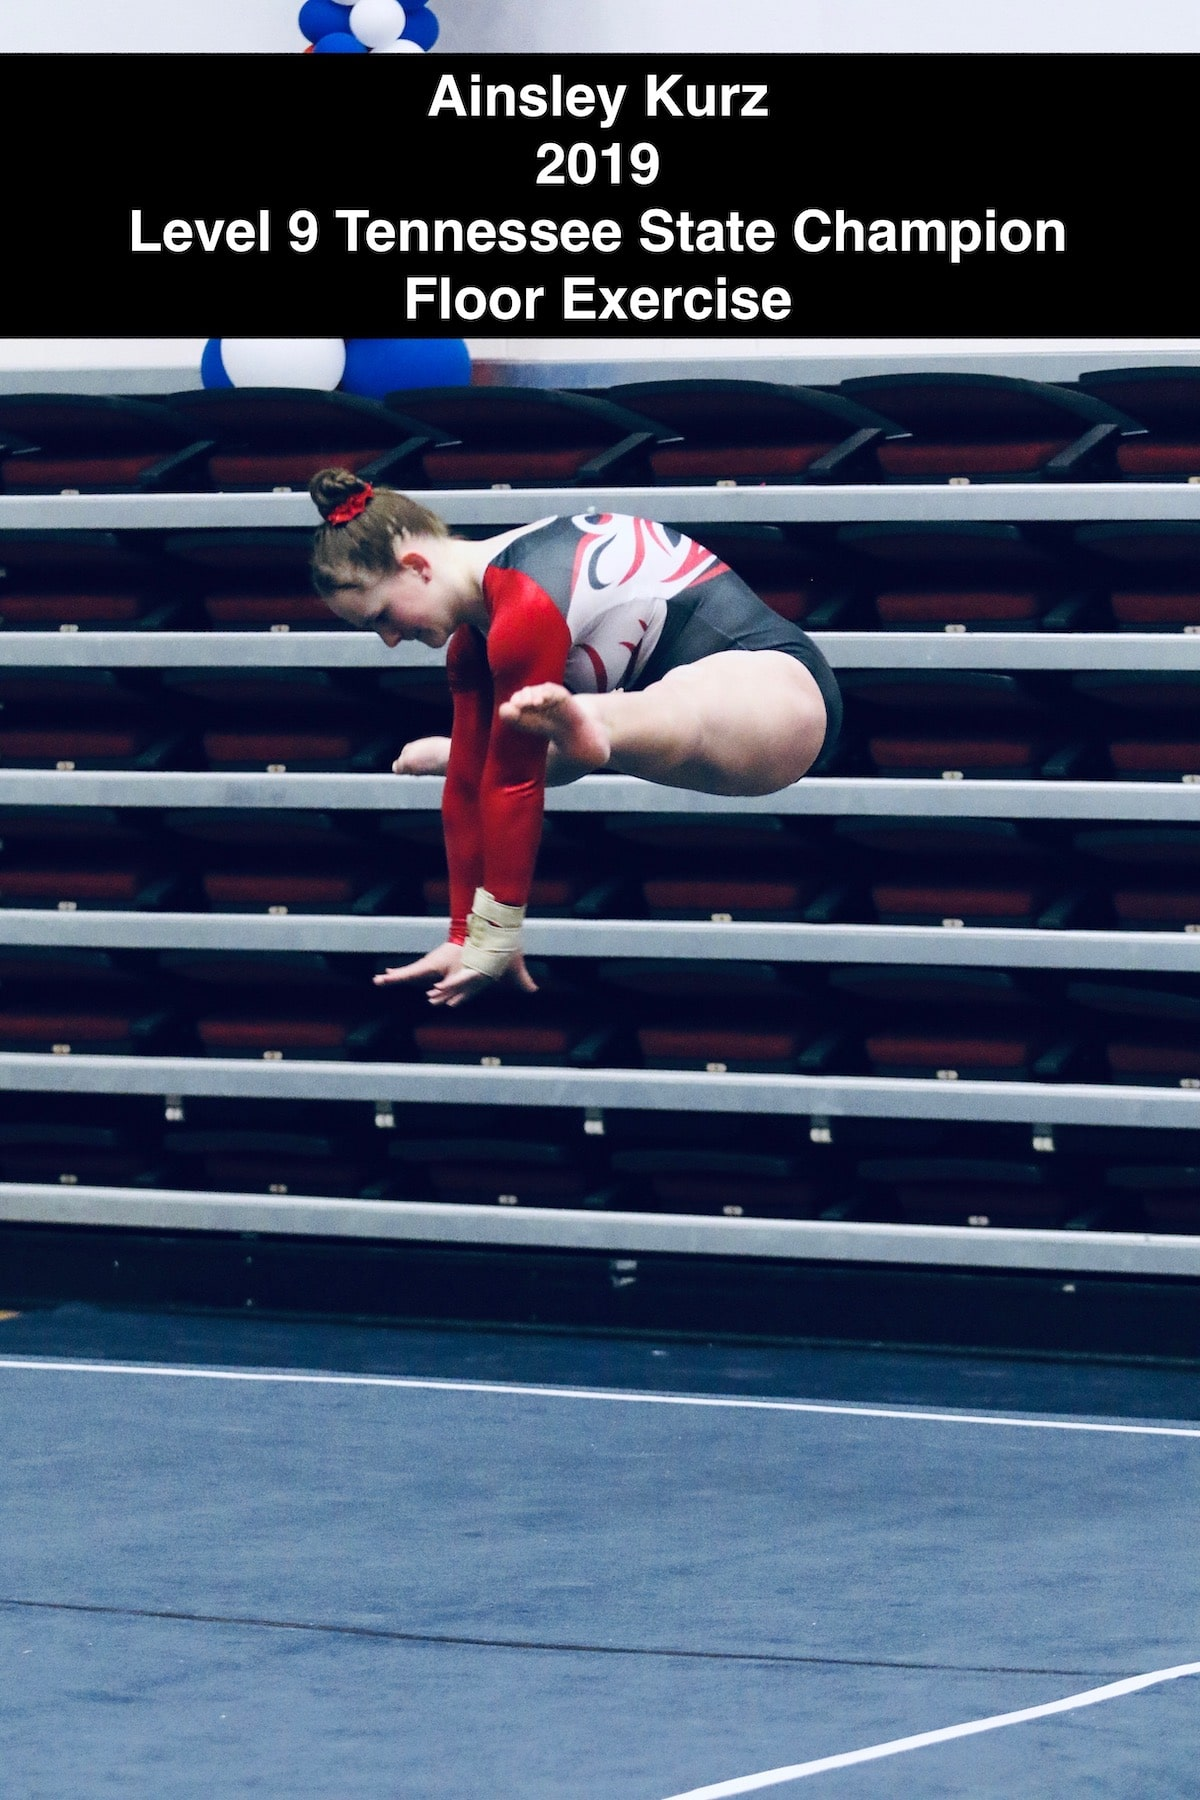 Ainsley Kurz 2019 Level 9 Tennessee State Champion Floor Exercise